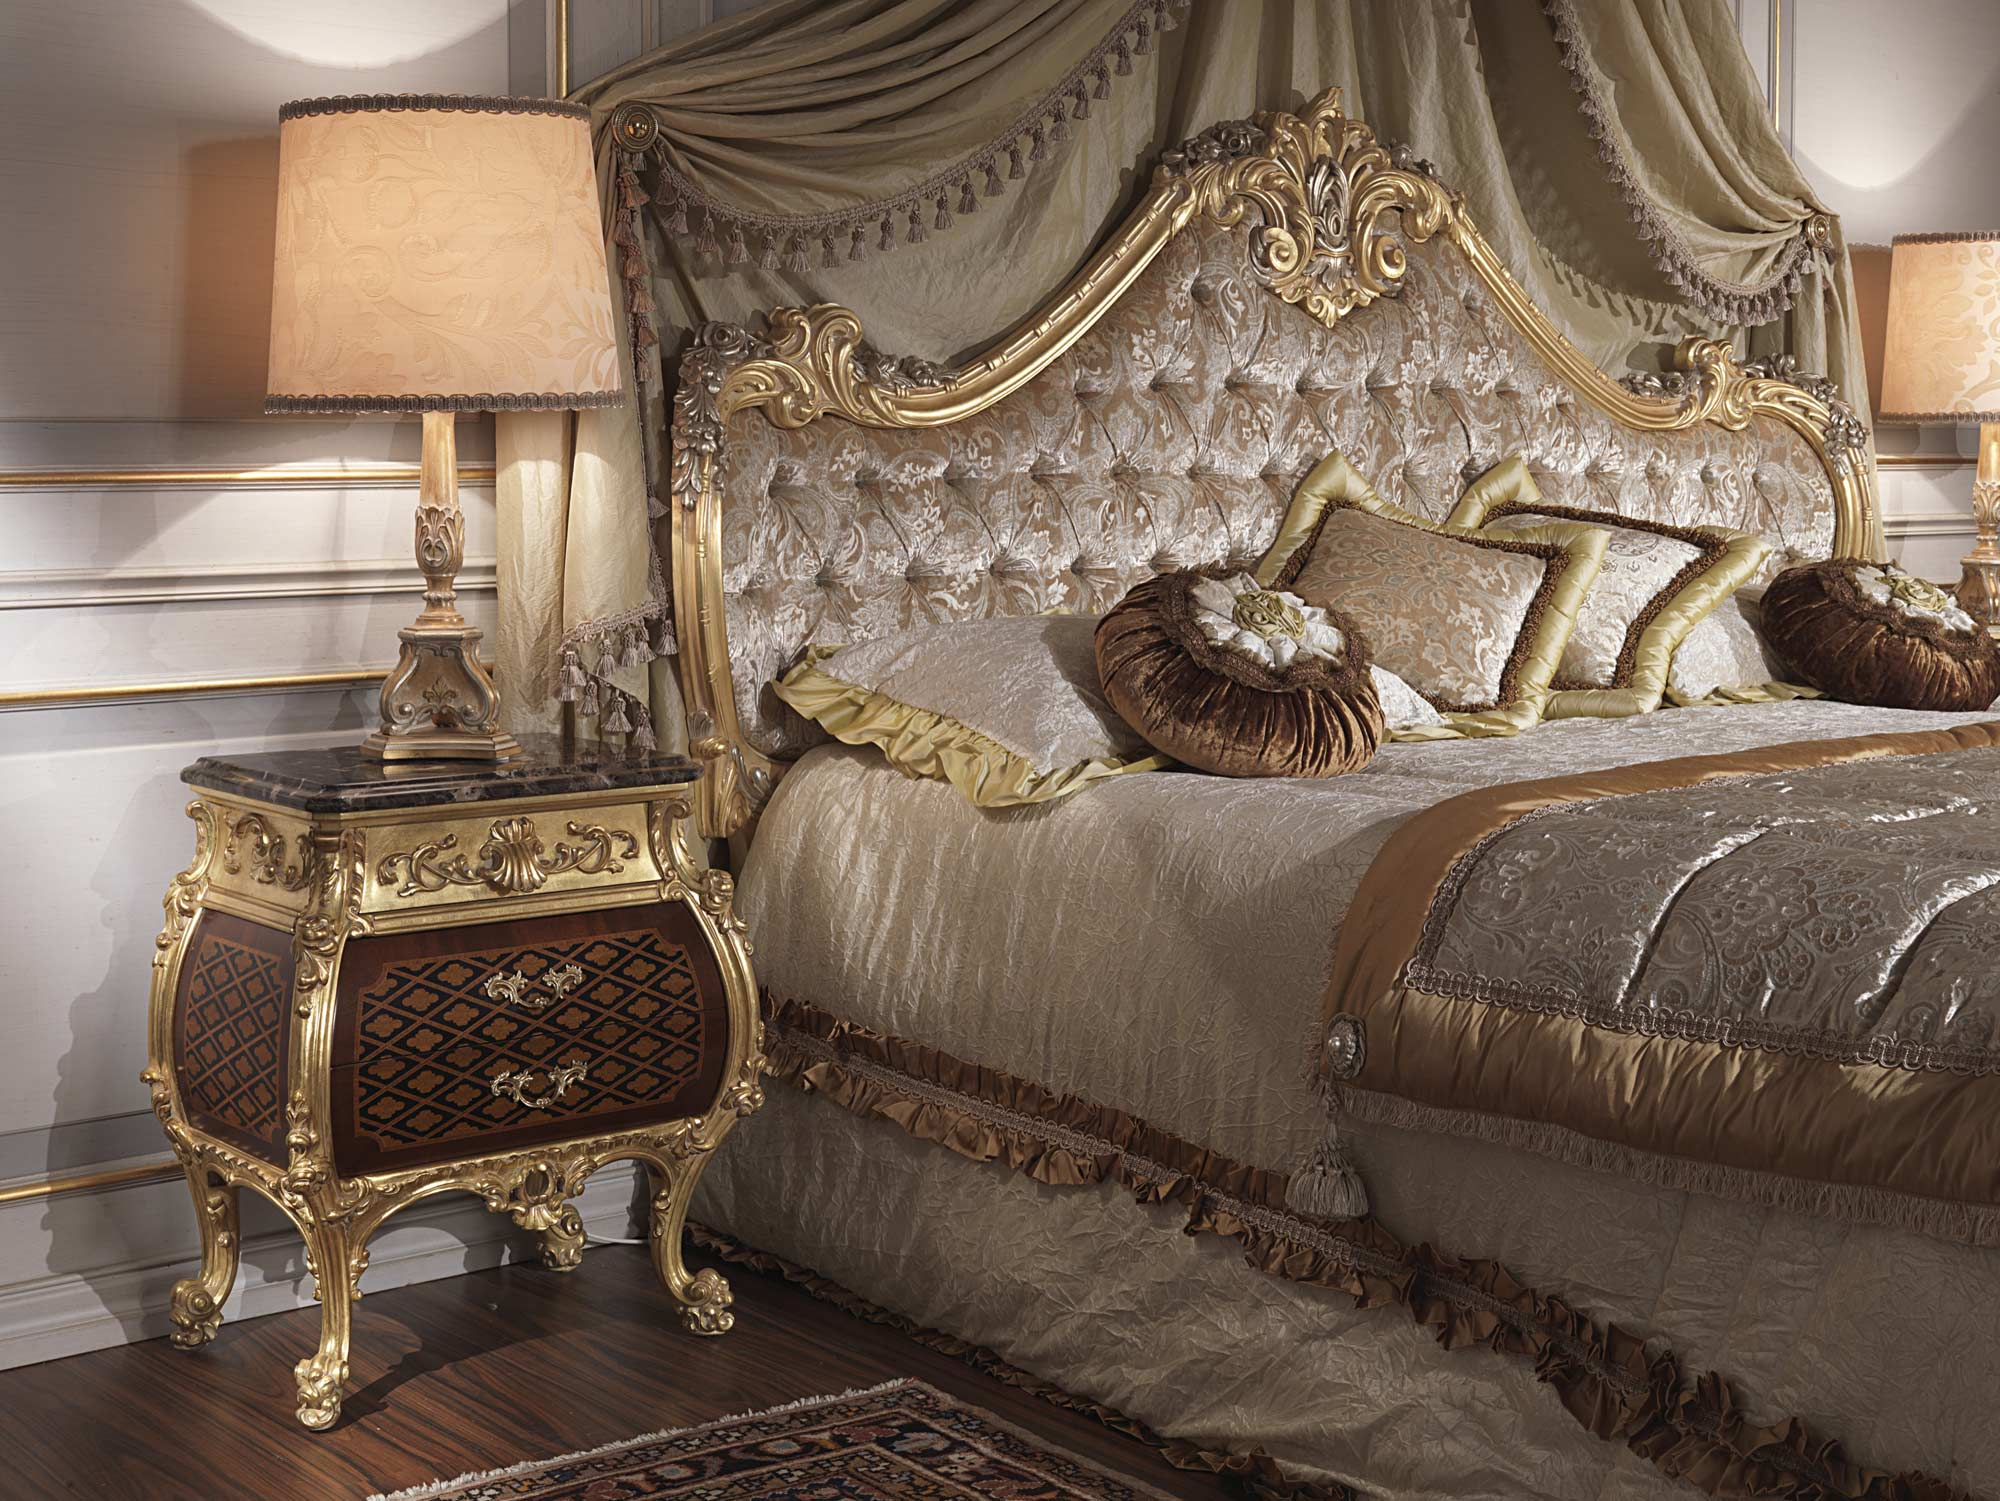 Contract Bedroom Furniture Style luxury night table emperador gold, art. 397-931 | vimercati